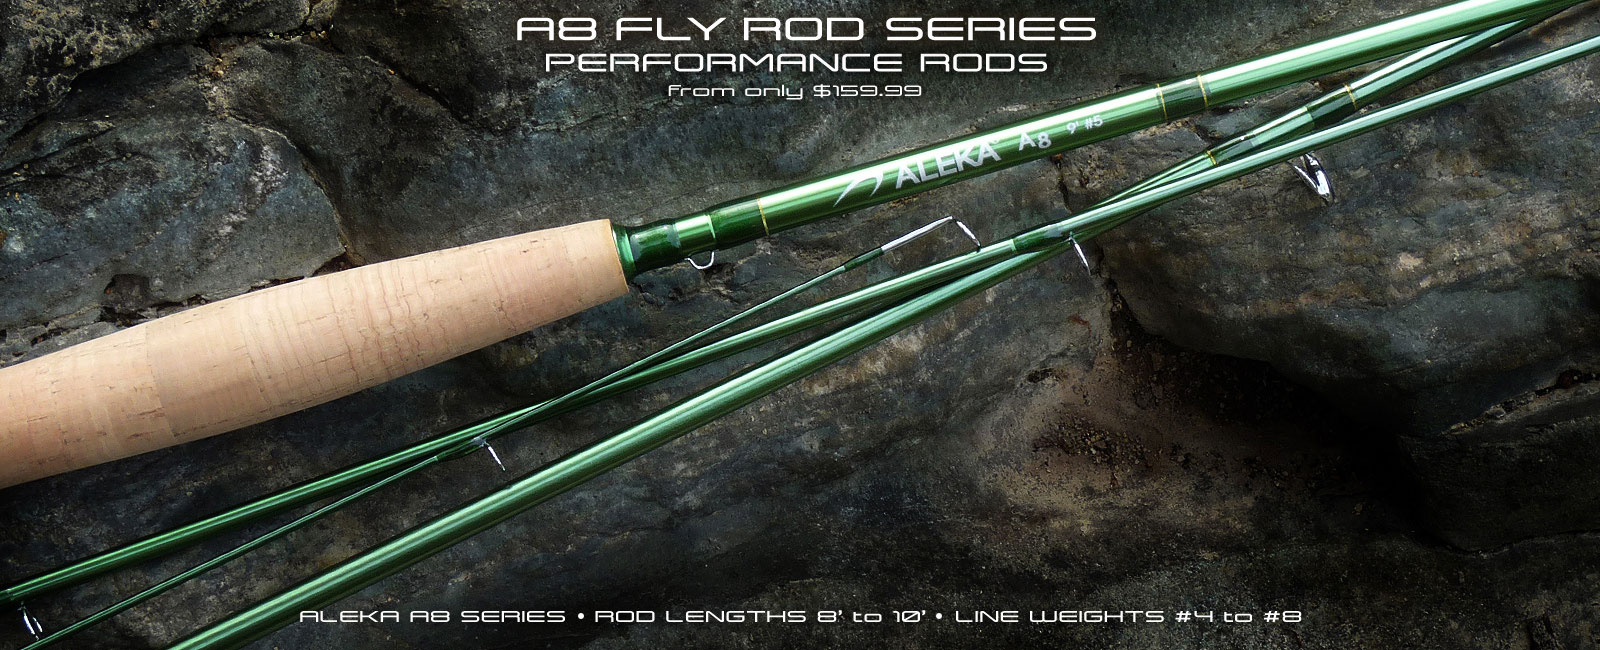 ALEKA A8 Fly Rod Series